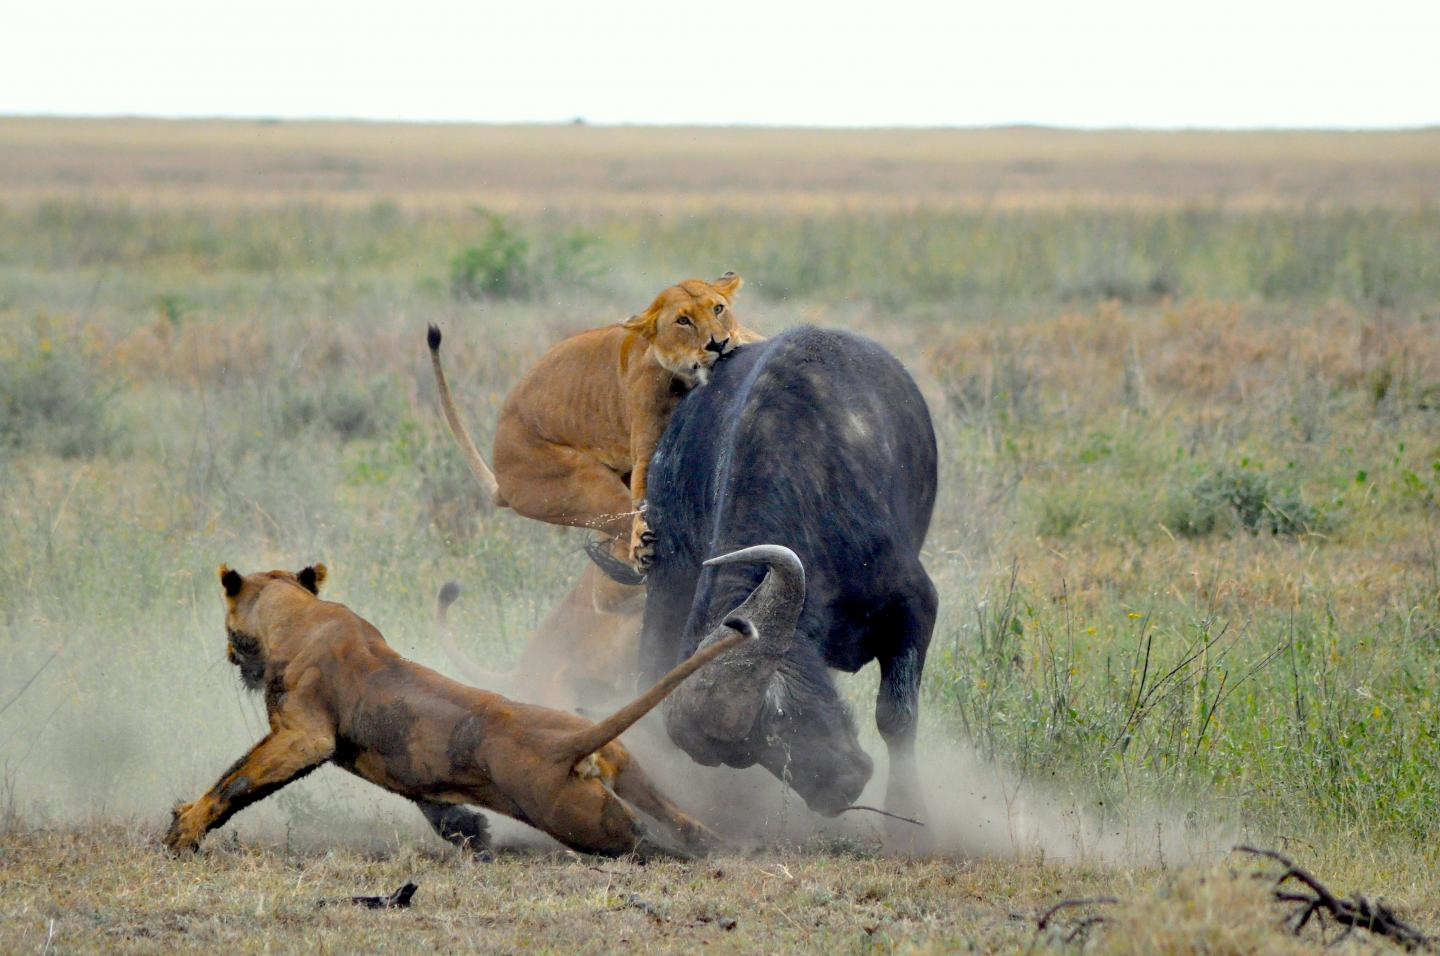 Buffalo Being Attacked by Lions in Serengeti National Park (1 of 2)